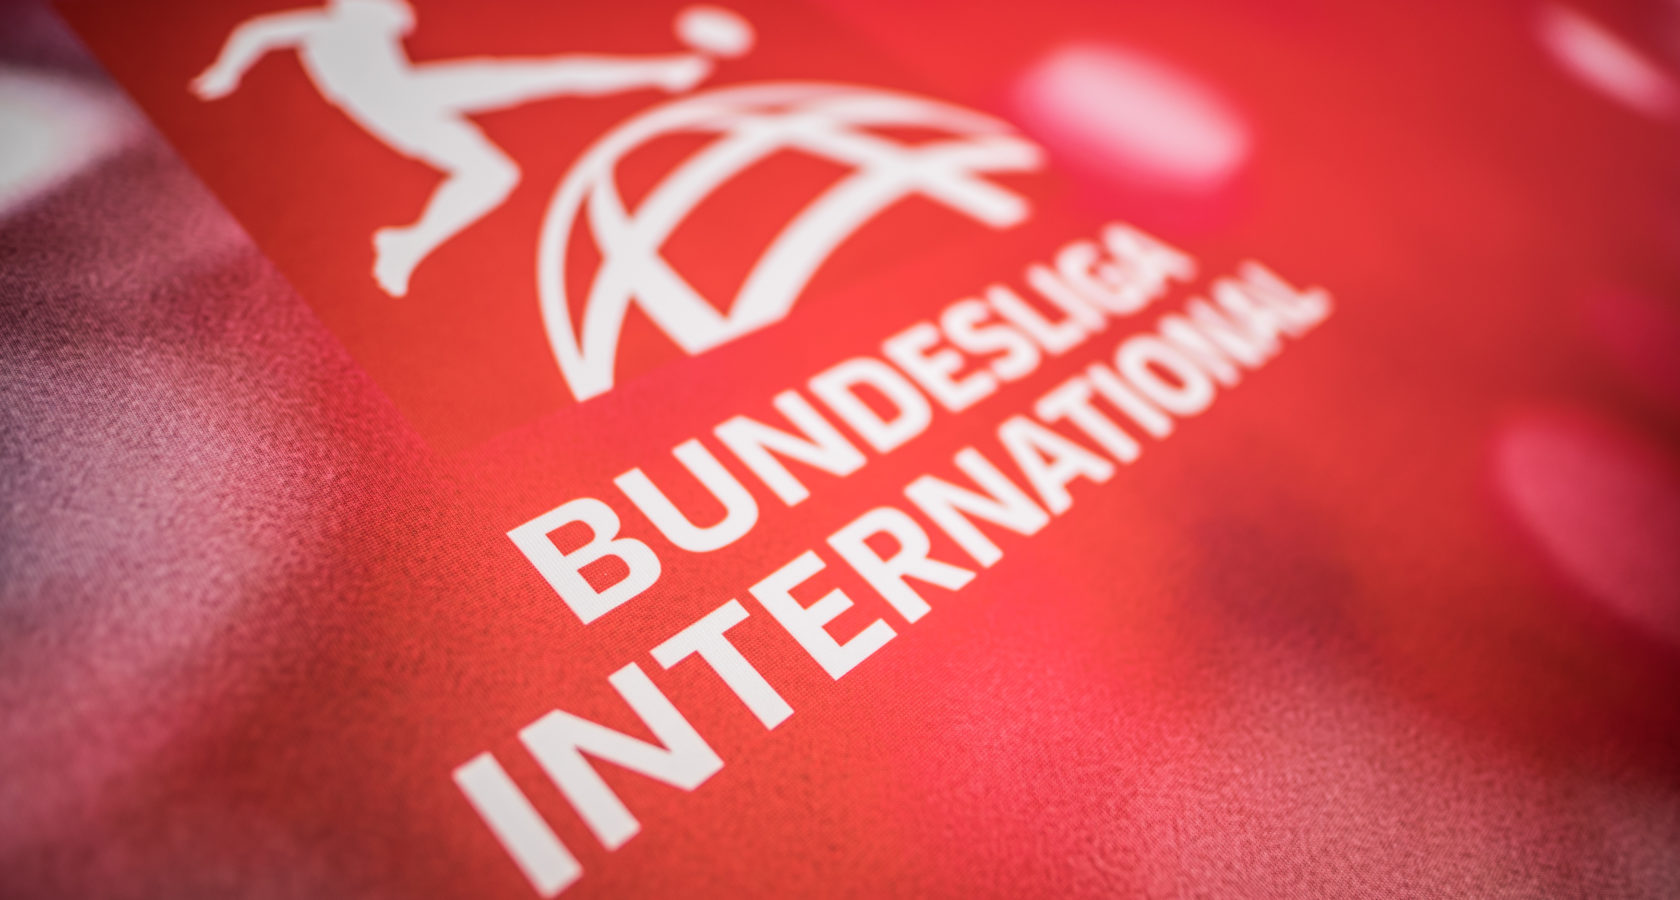 Bundesliga International Meeting